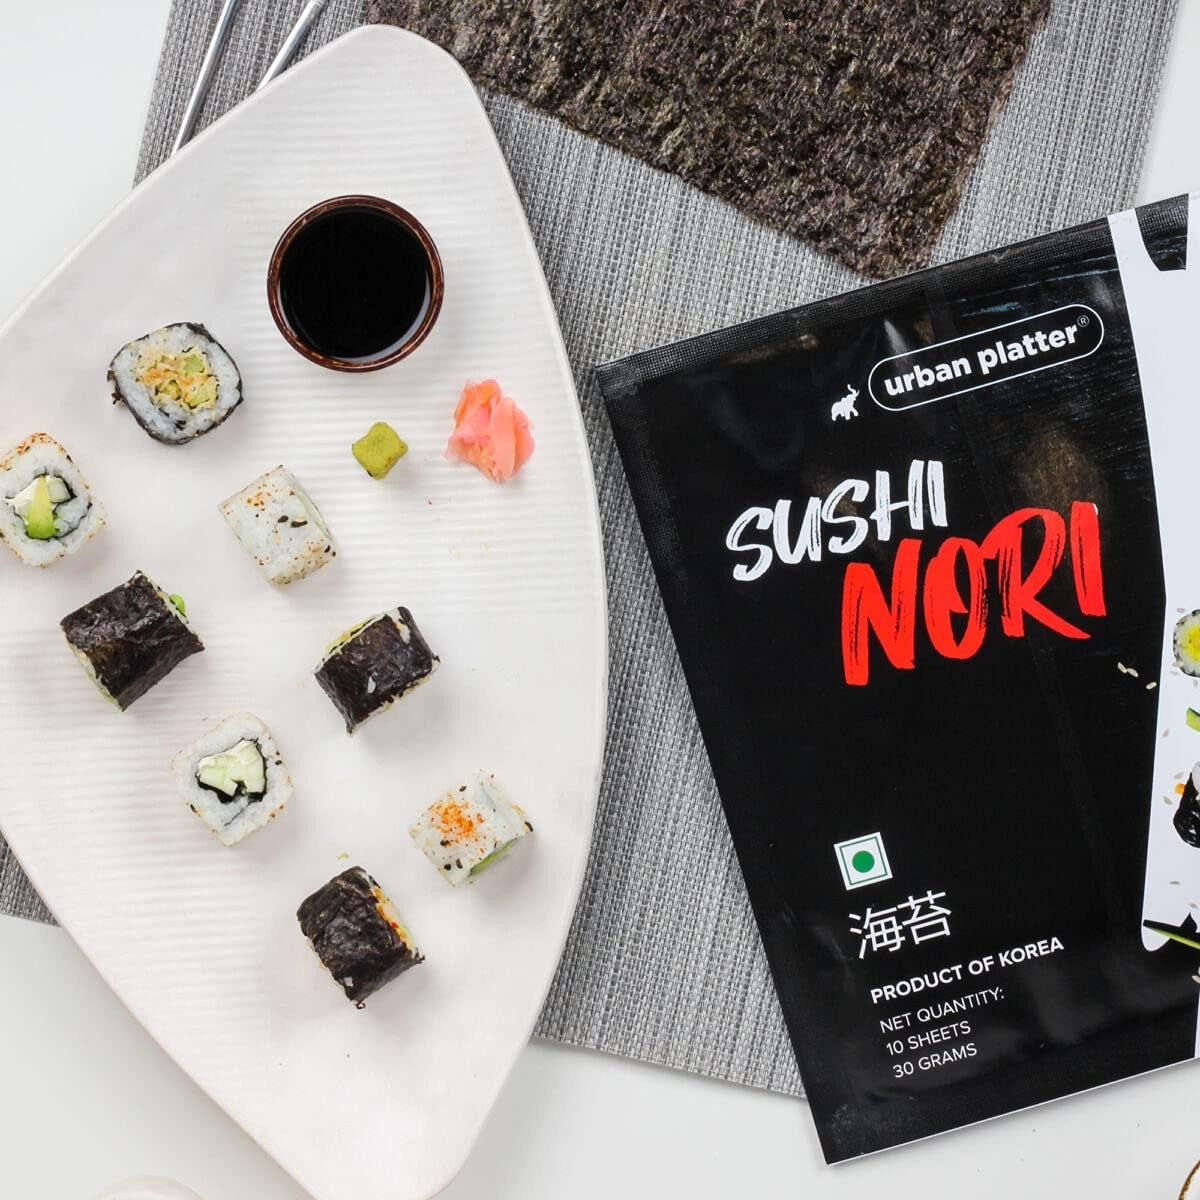 A pack of seaweed sheets set alongside a plate of sushi/kimbap wrapped in seaweed sheets.